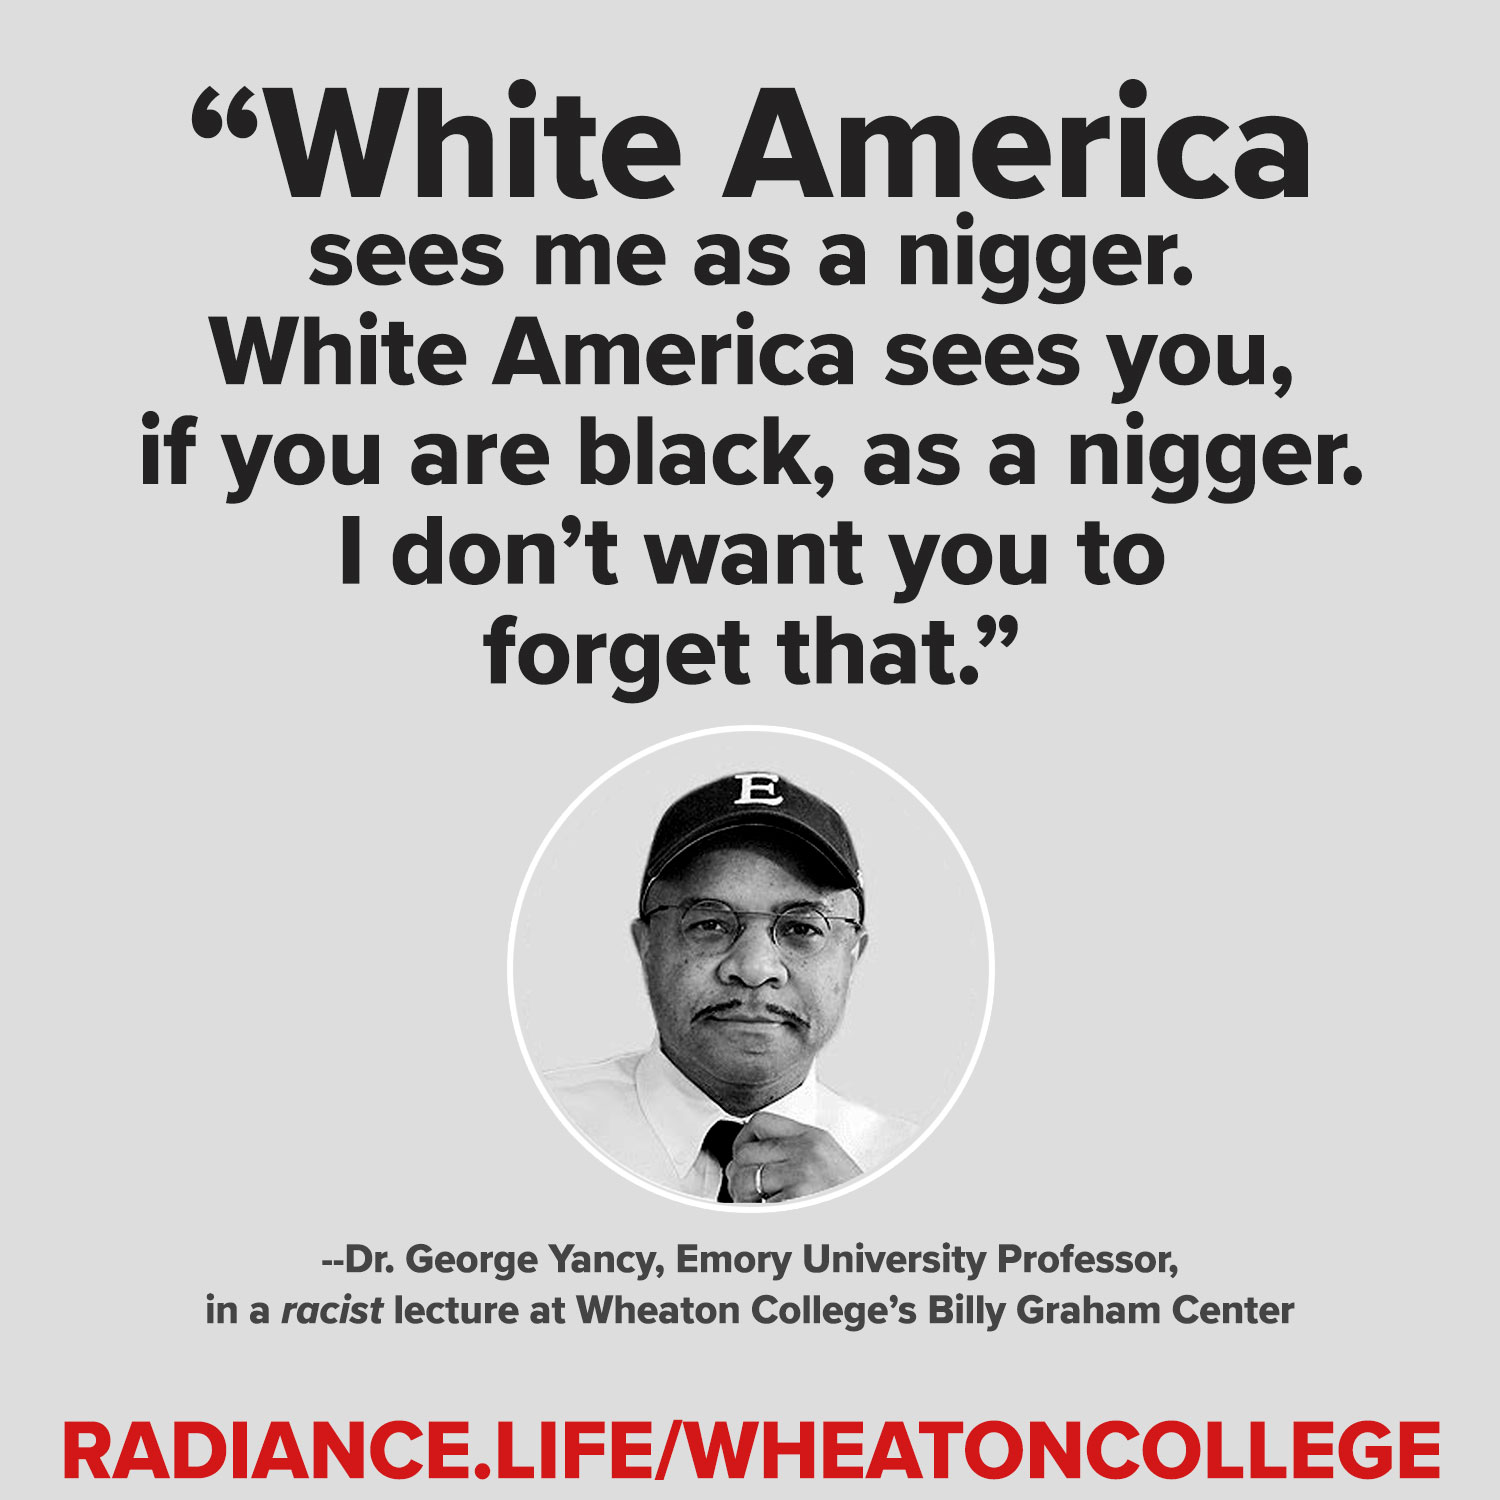 Wheaton College denounces Radiance's Ryan Bomberger but pays for racist lecture from George Yancy.